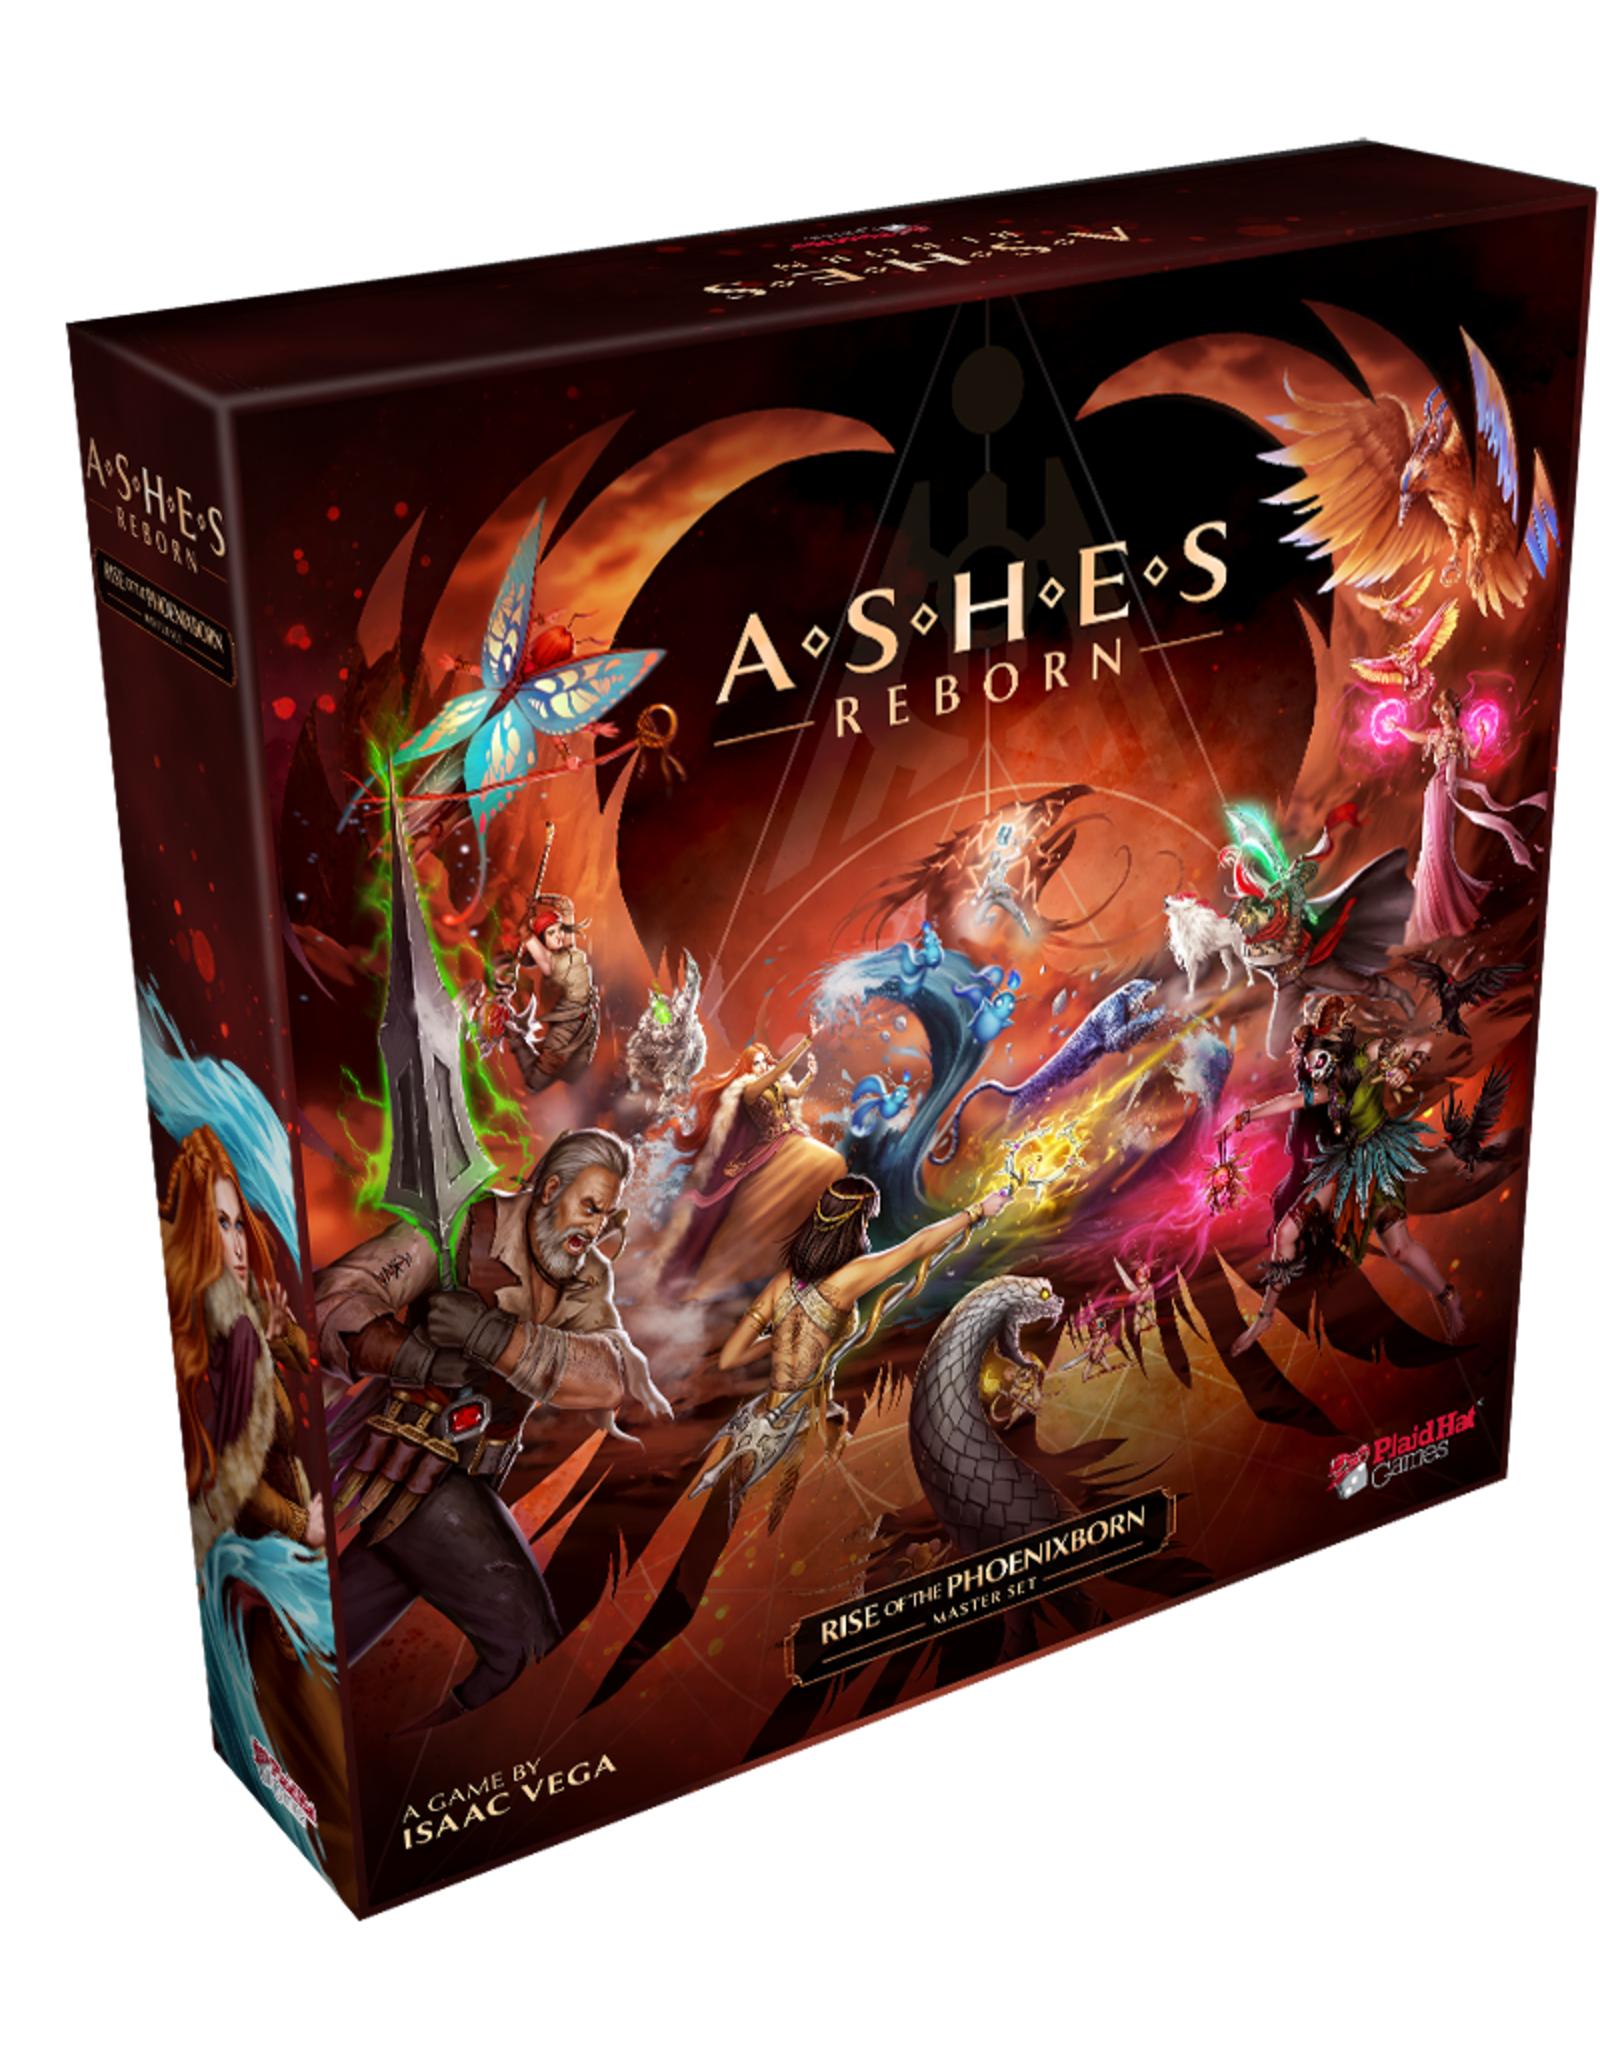 Plaid Hat Games Ashes Reborn: Rise of the Phoenixborn Master Set